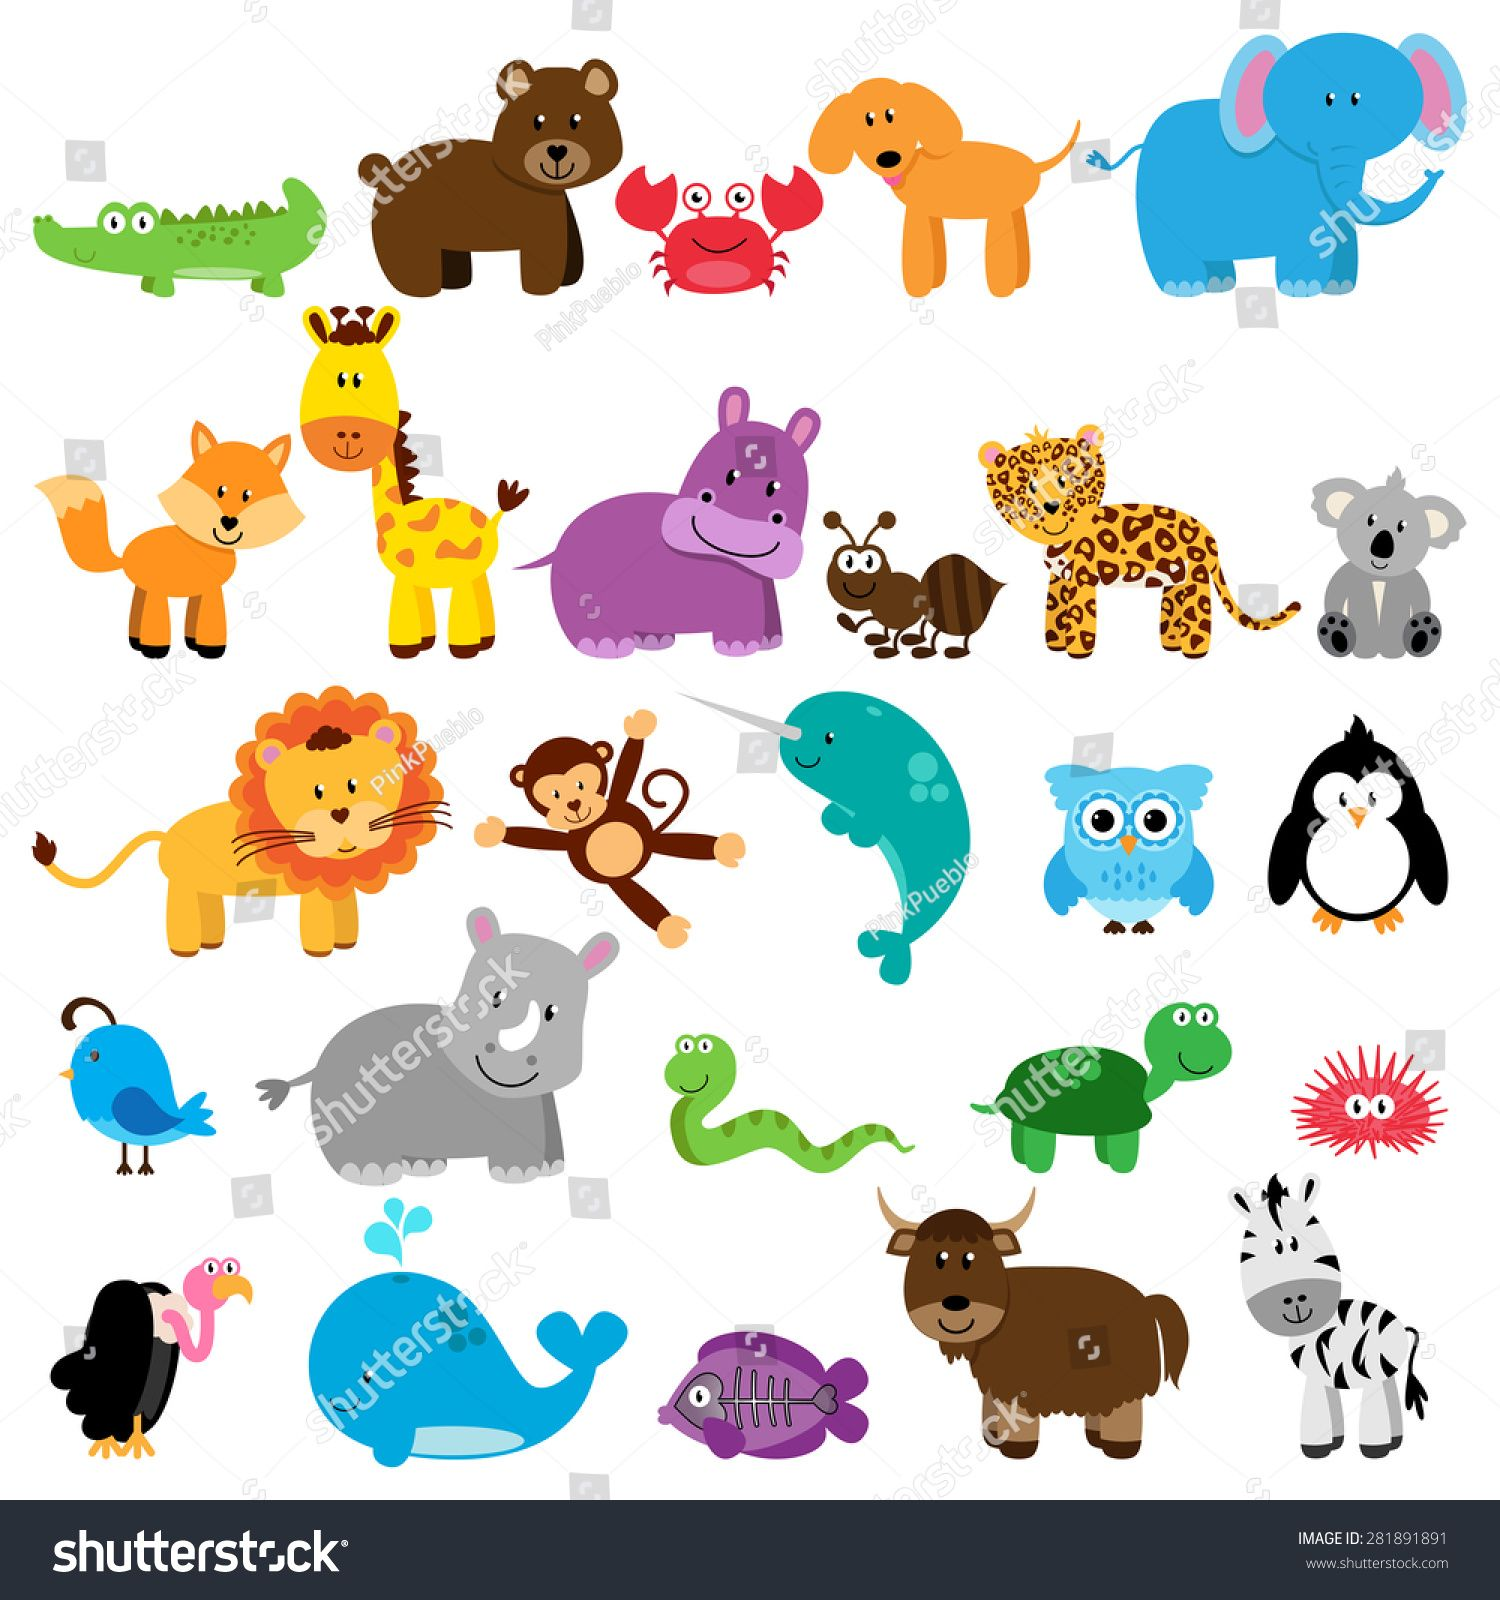 Vector Collection Of Animals One Animal For Each Letter Of The Alphabet Ad Ad Animals Colle Monkey Illustration Cute Animal Illustration Animal Clipart